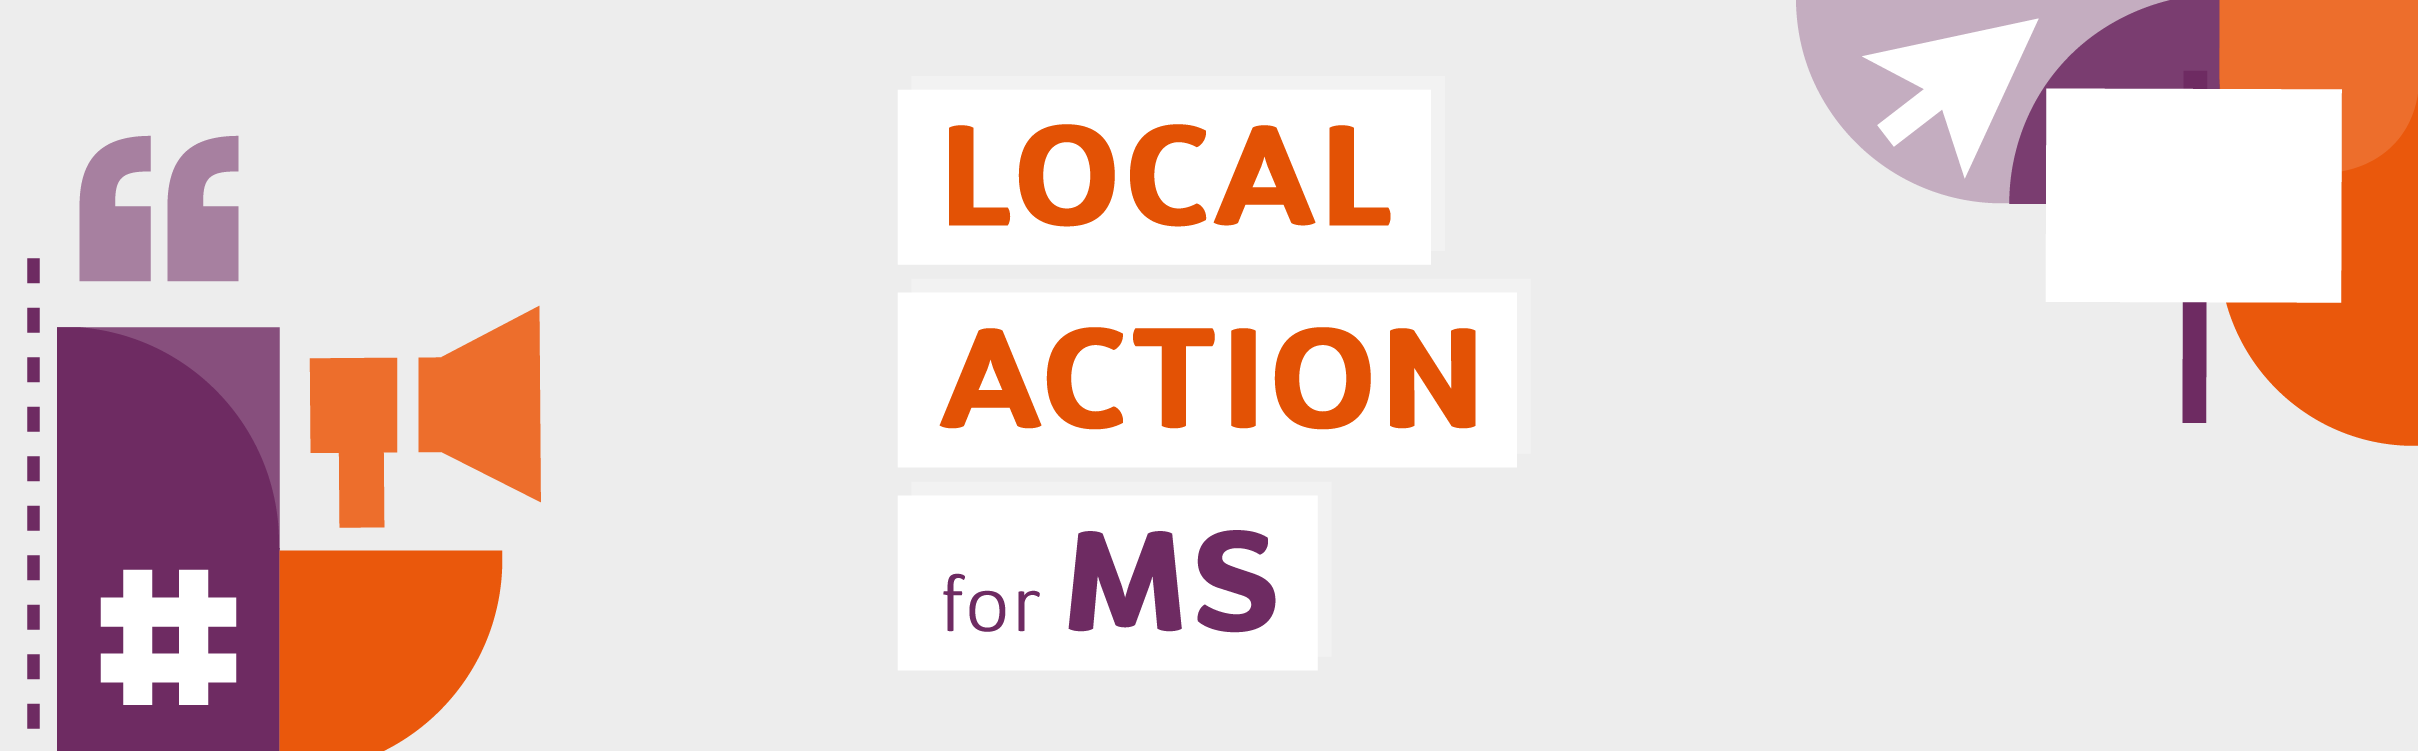 Local Action for MS